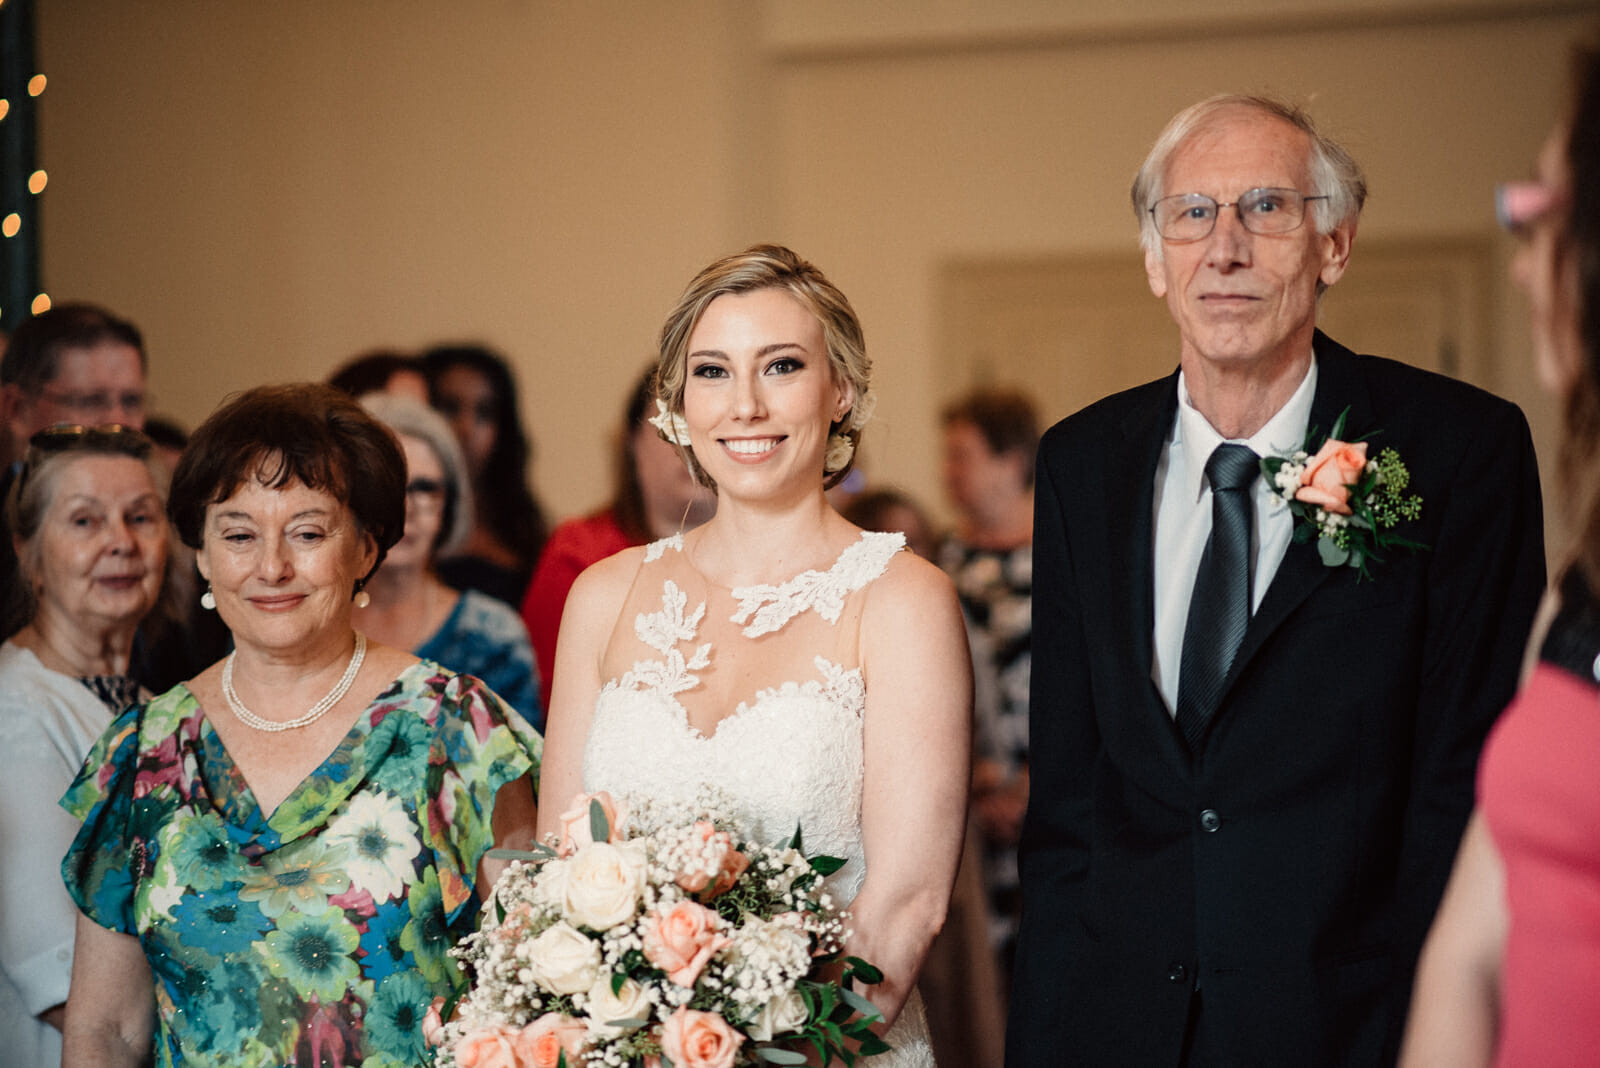 mother and father walk bride down the aisle